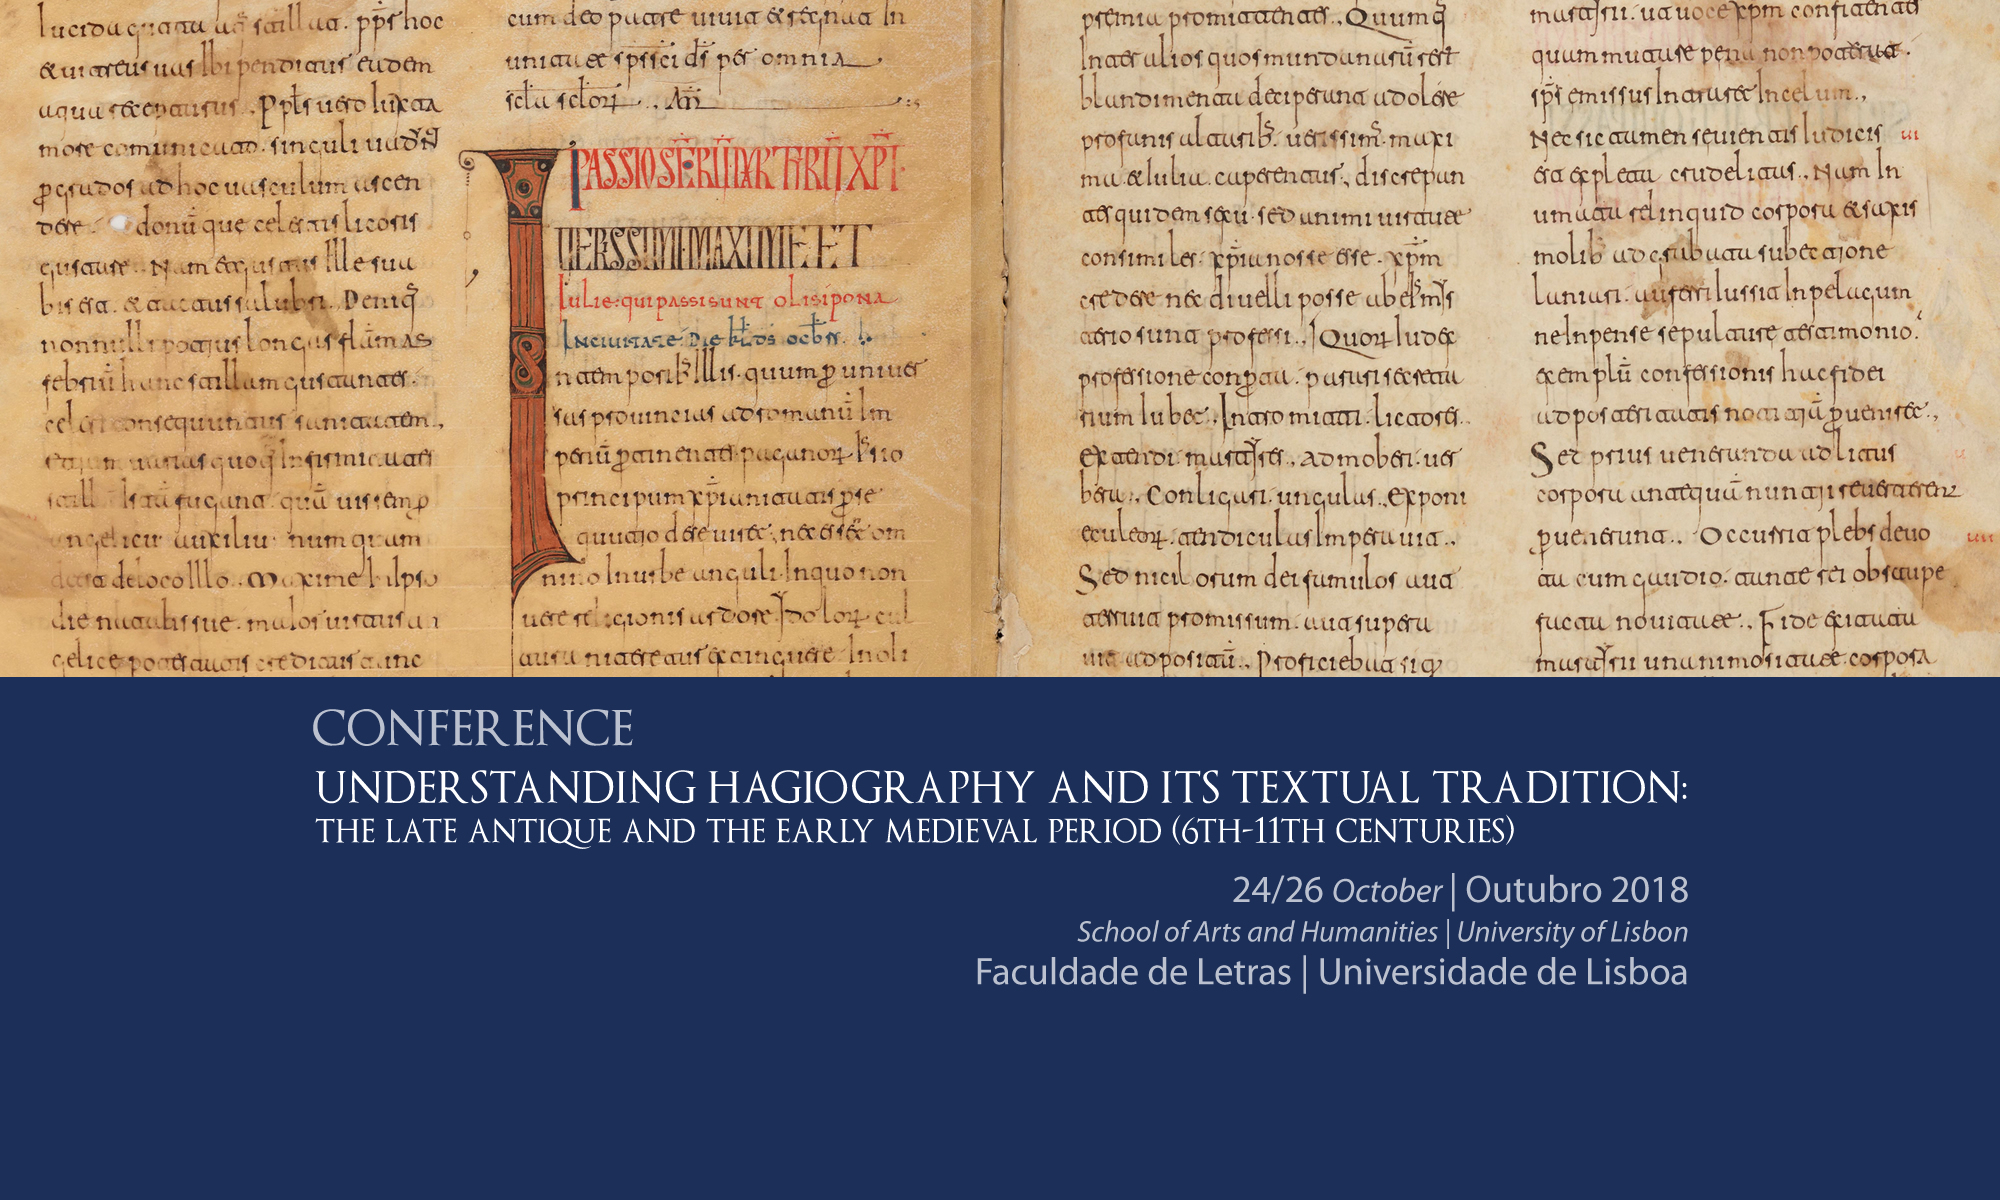 Understanding Hagiography and its Textual Tradition: